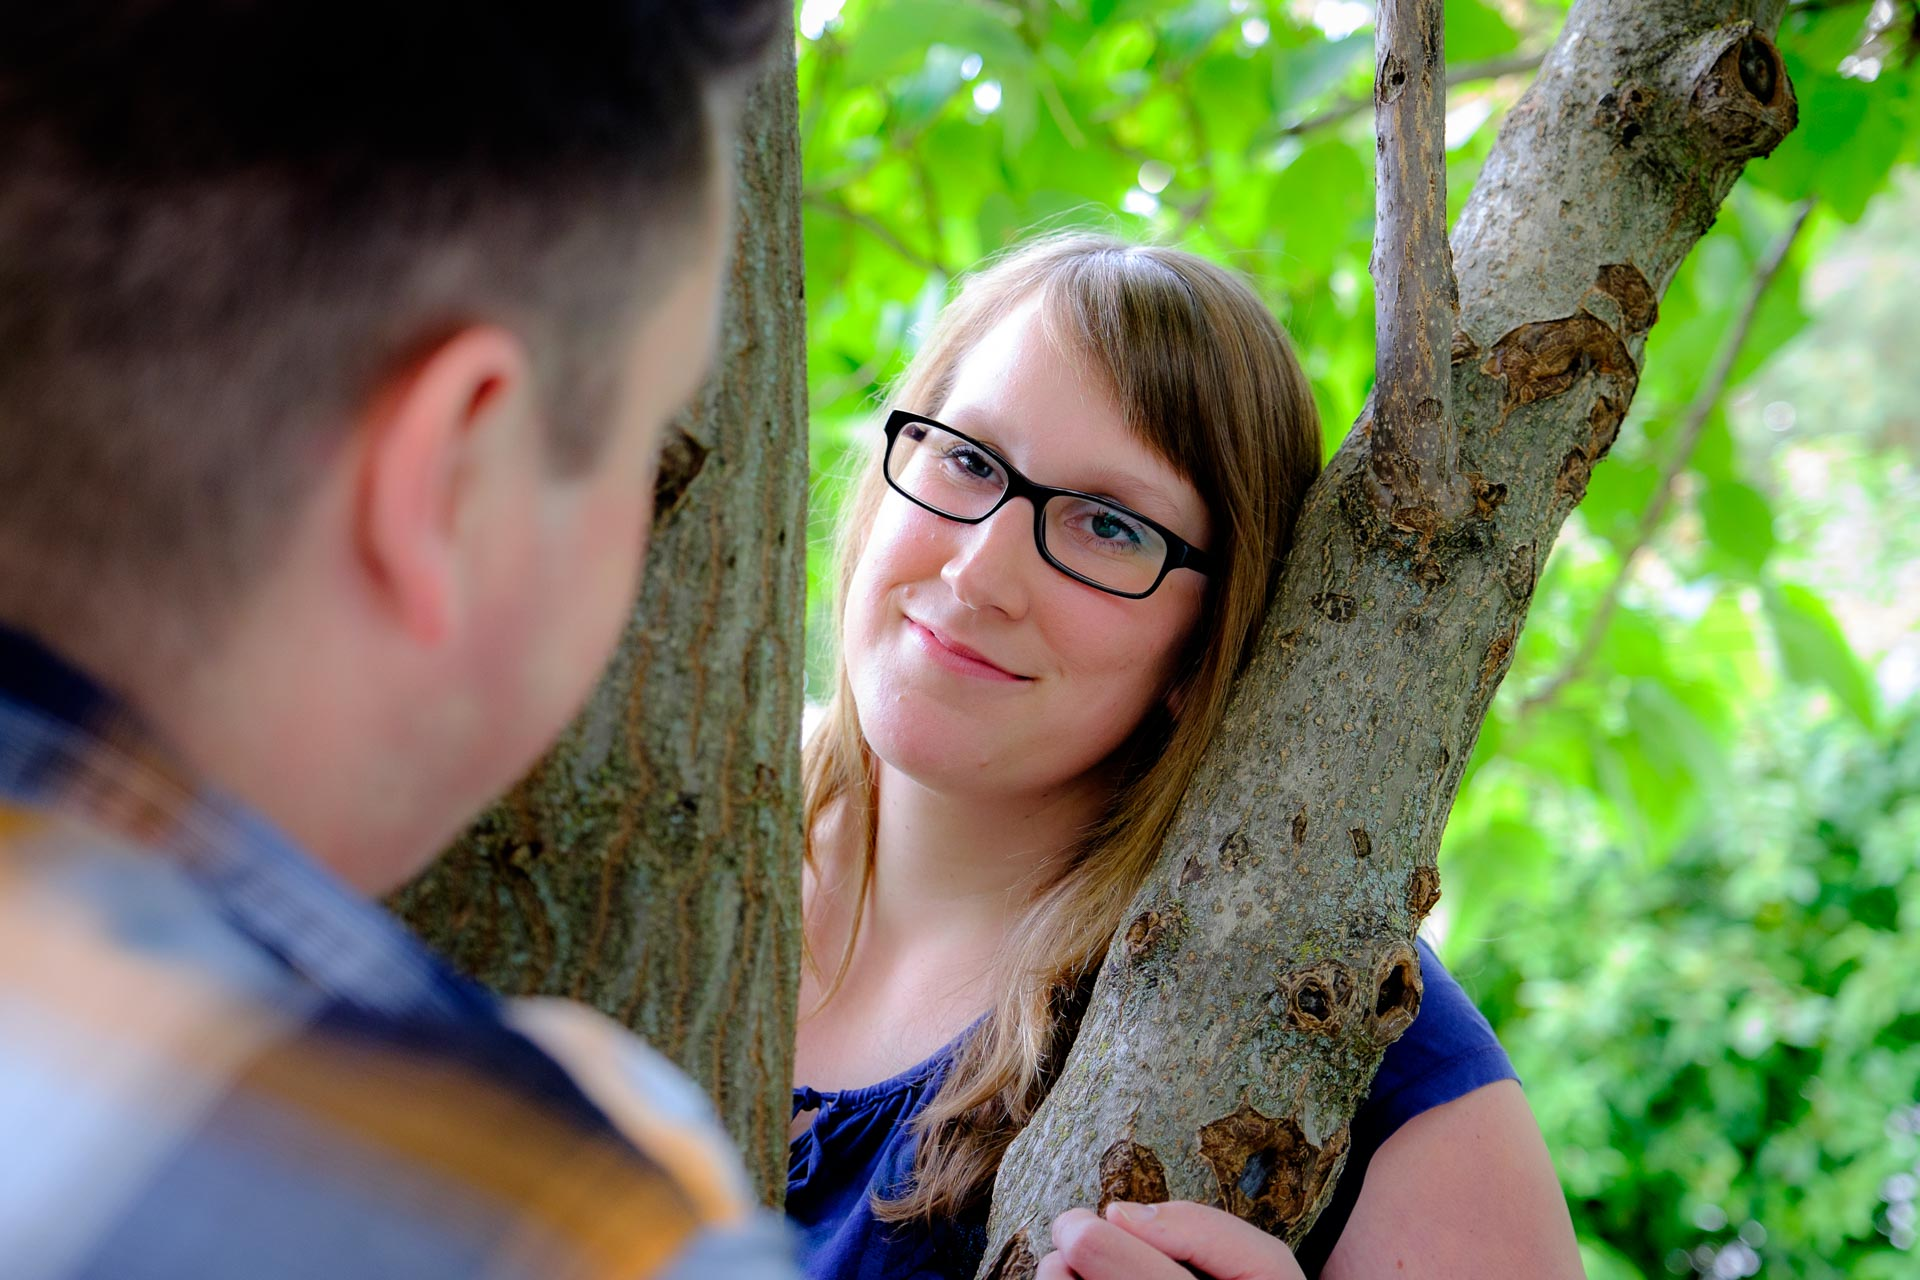 Paar Engagement-Shooting Winnenden am Baum